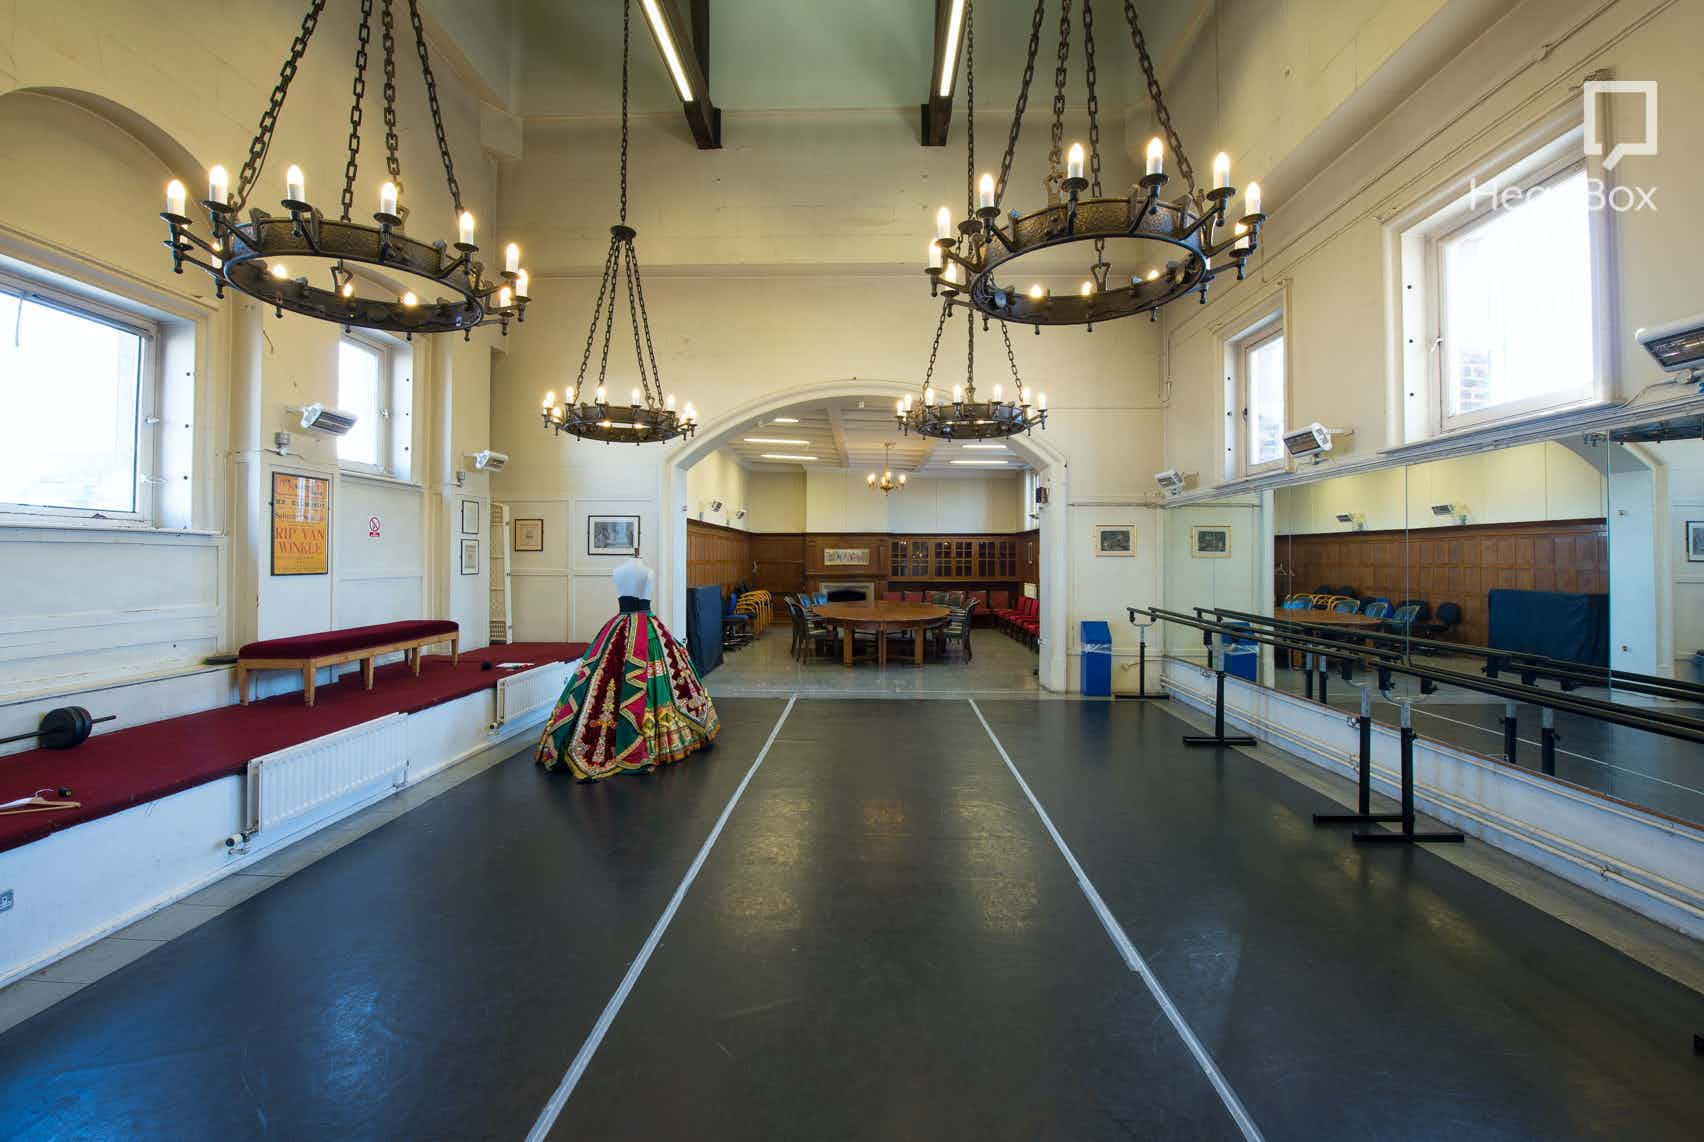 The Dome Room, Her Majesty's Theatre